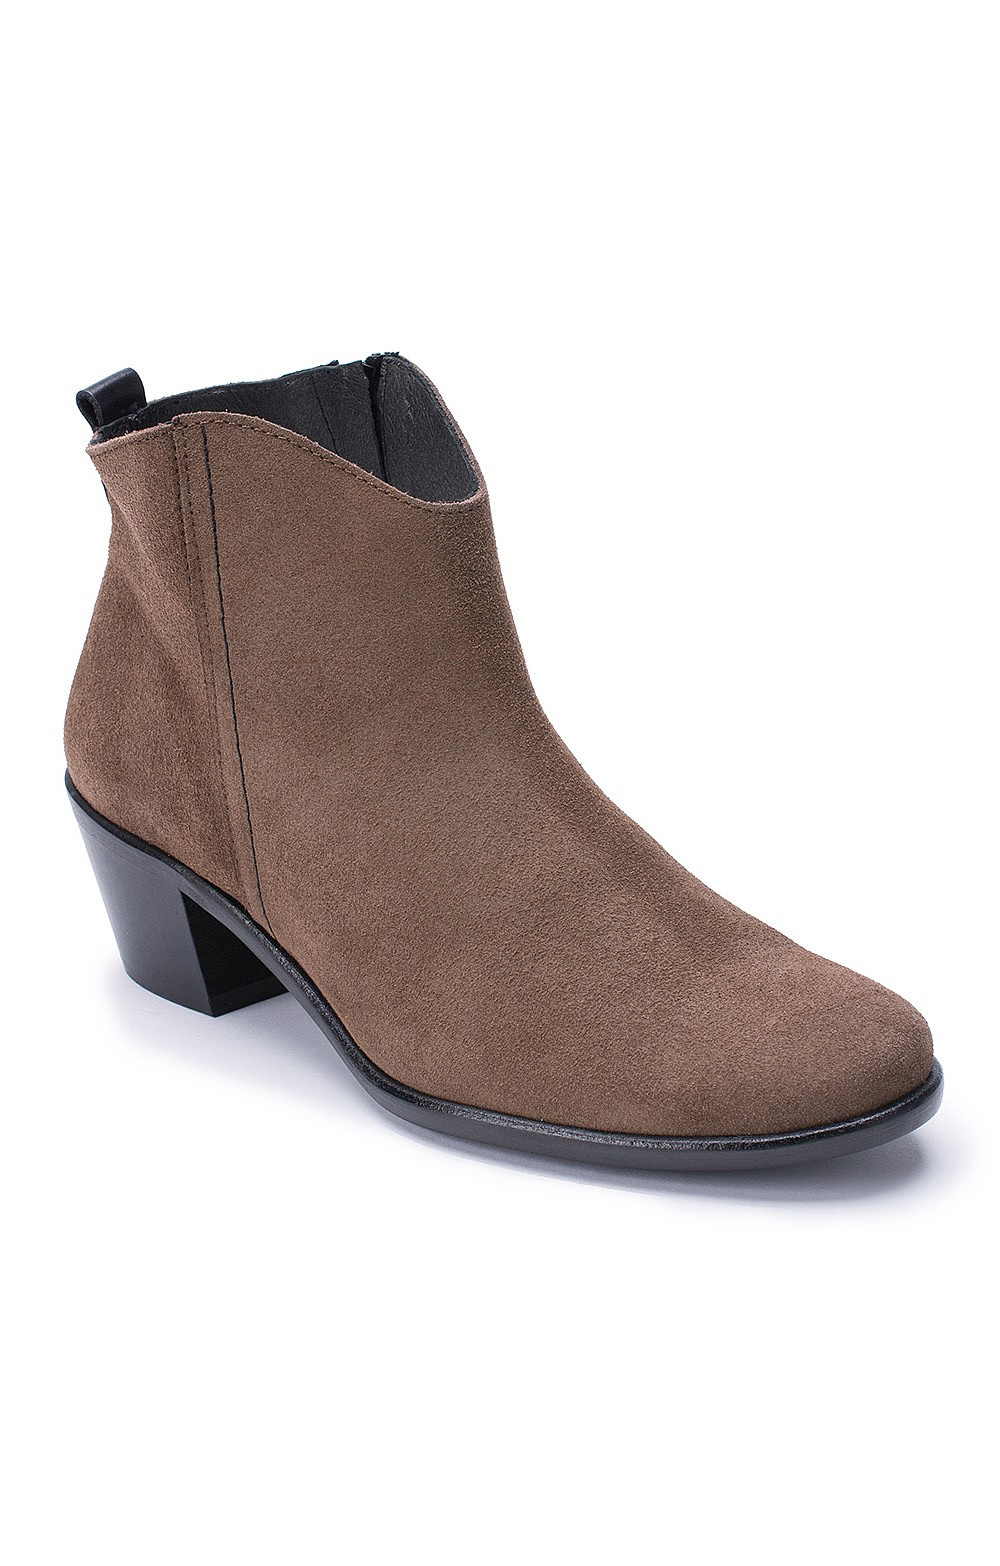 d636abde797 Classic Suede Ankle Boot - House of Bruar